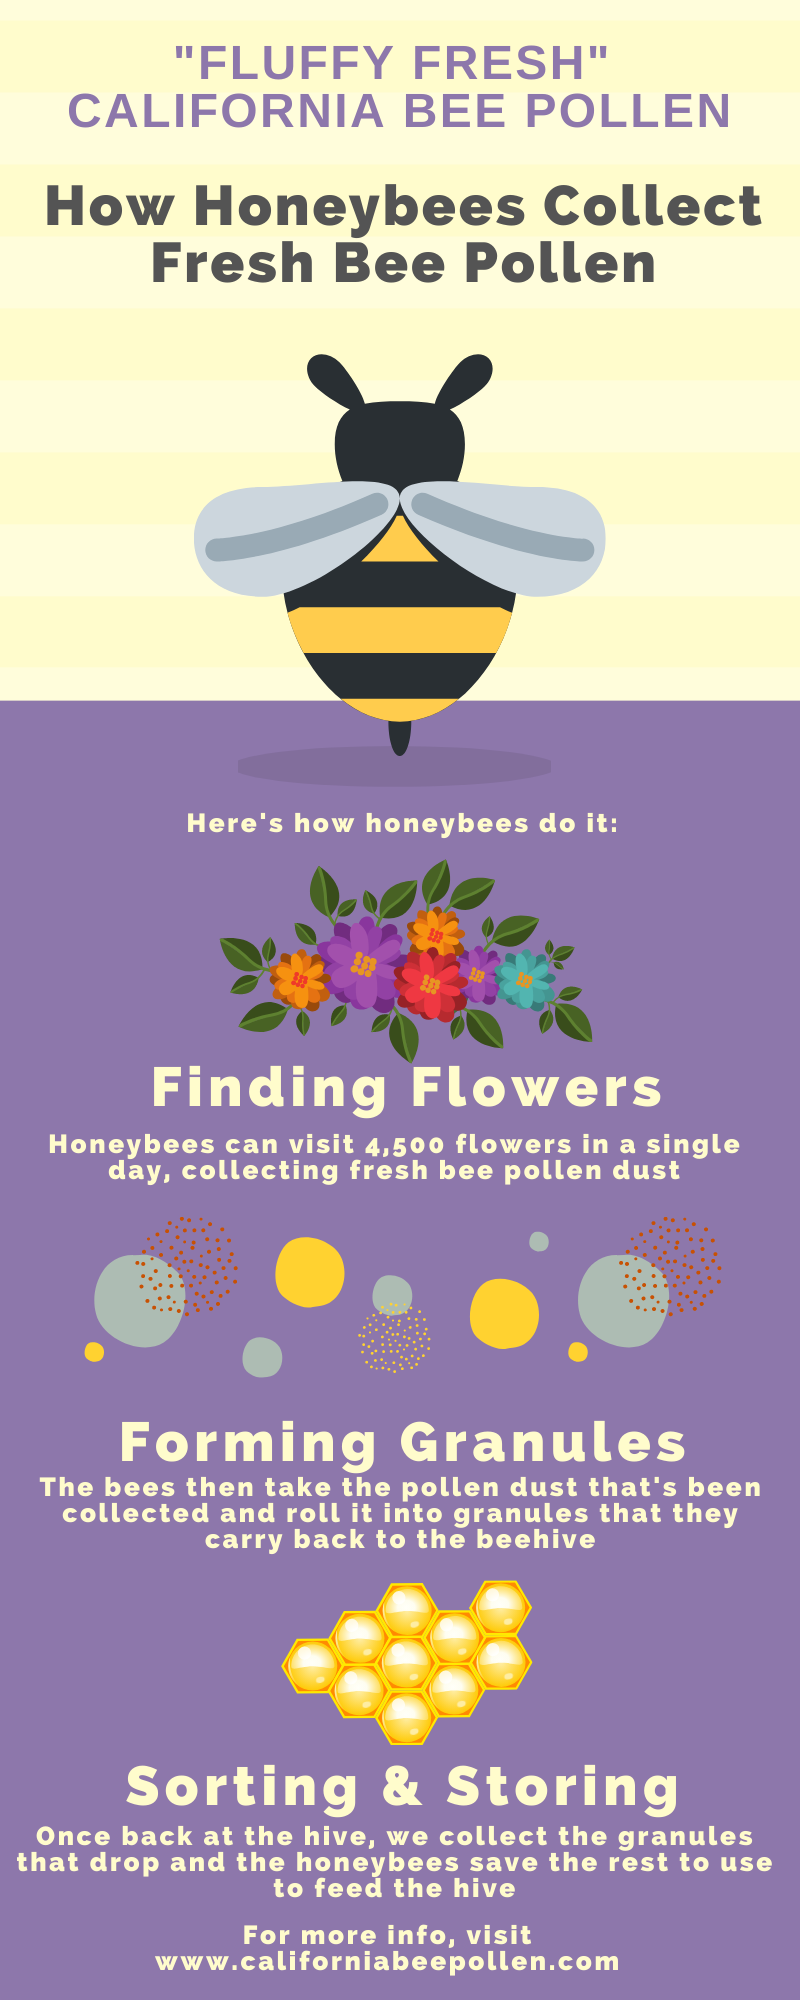 how honeybees collect fresh bee pollen infographic